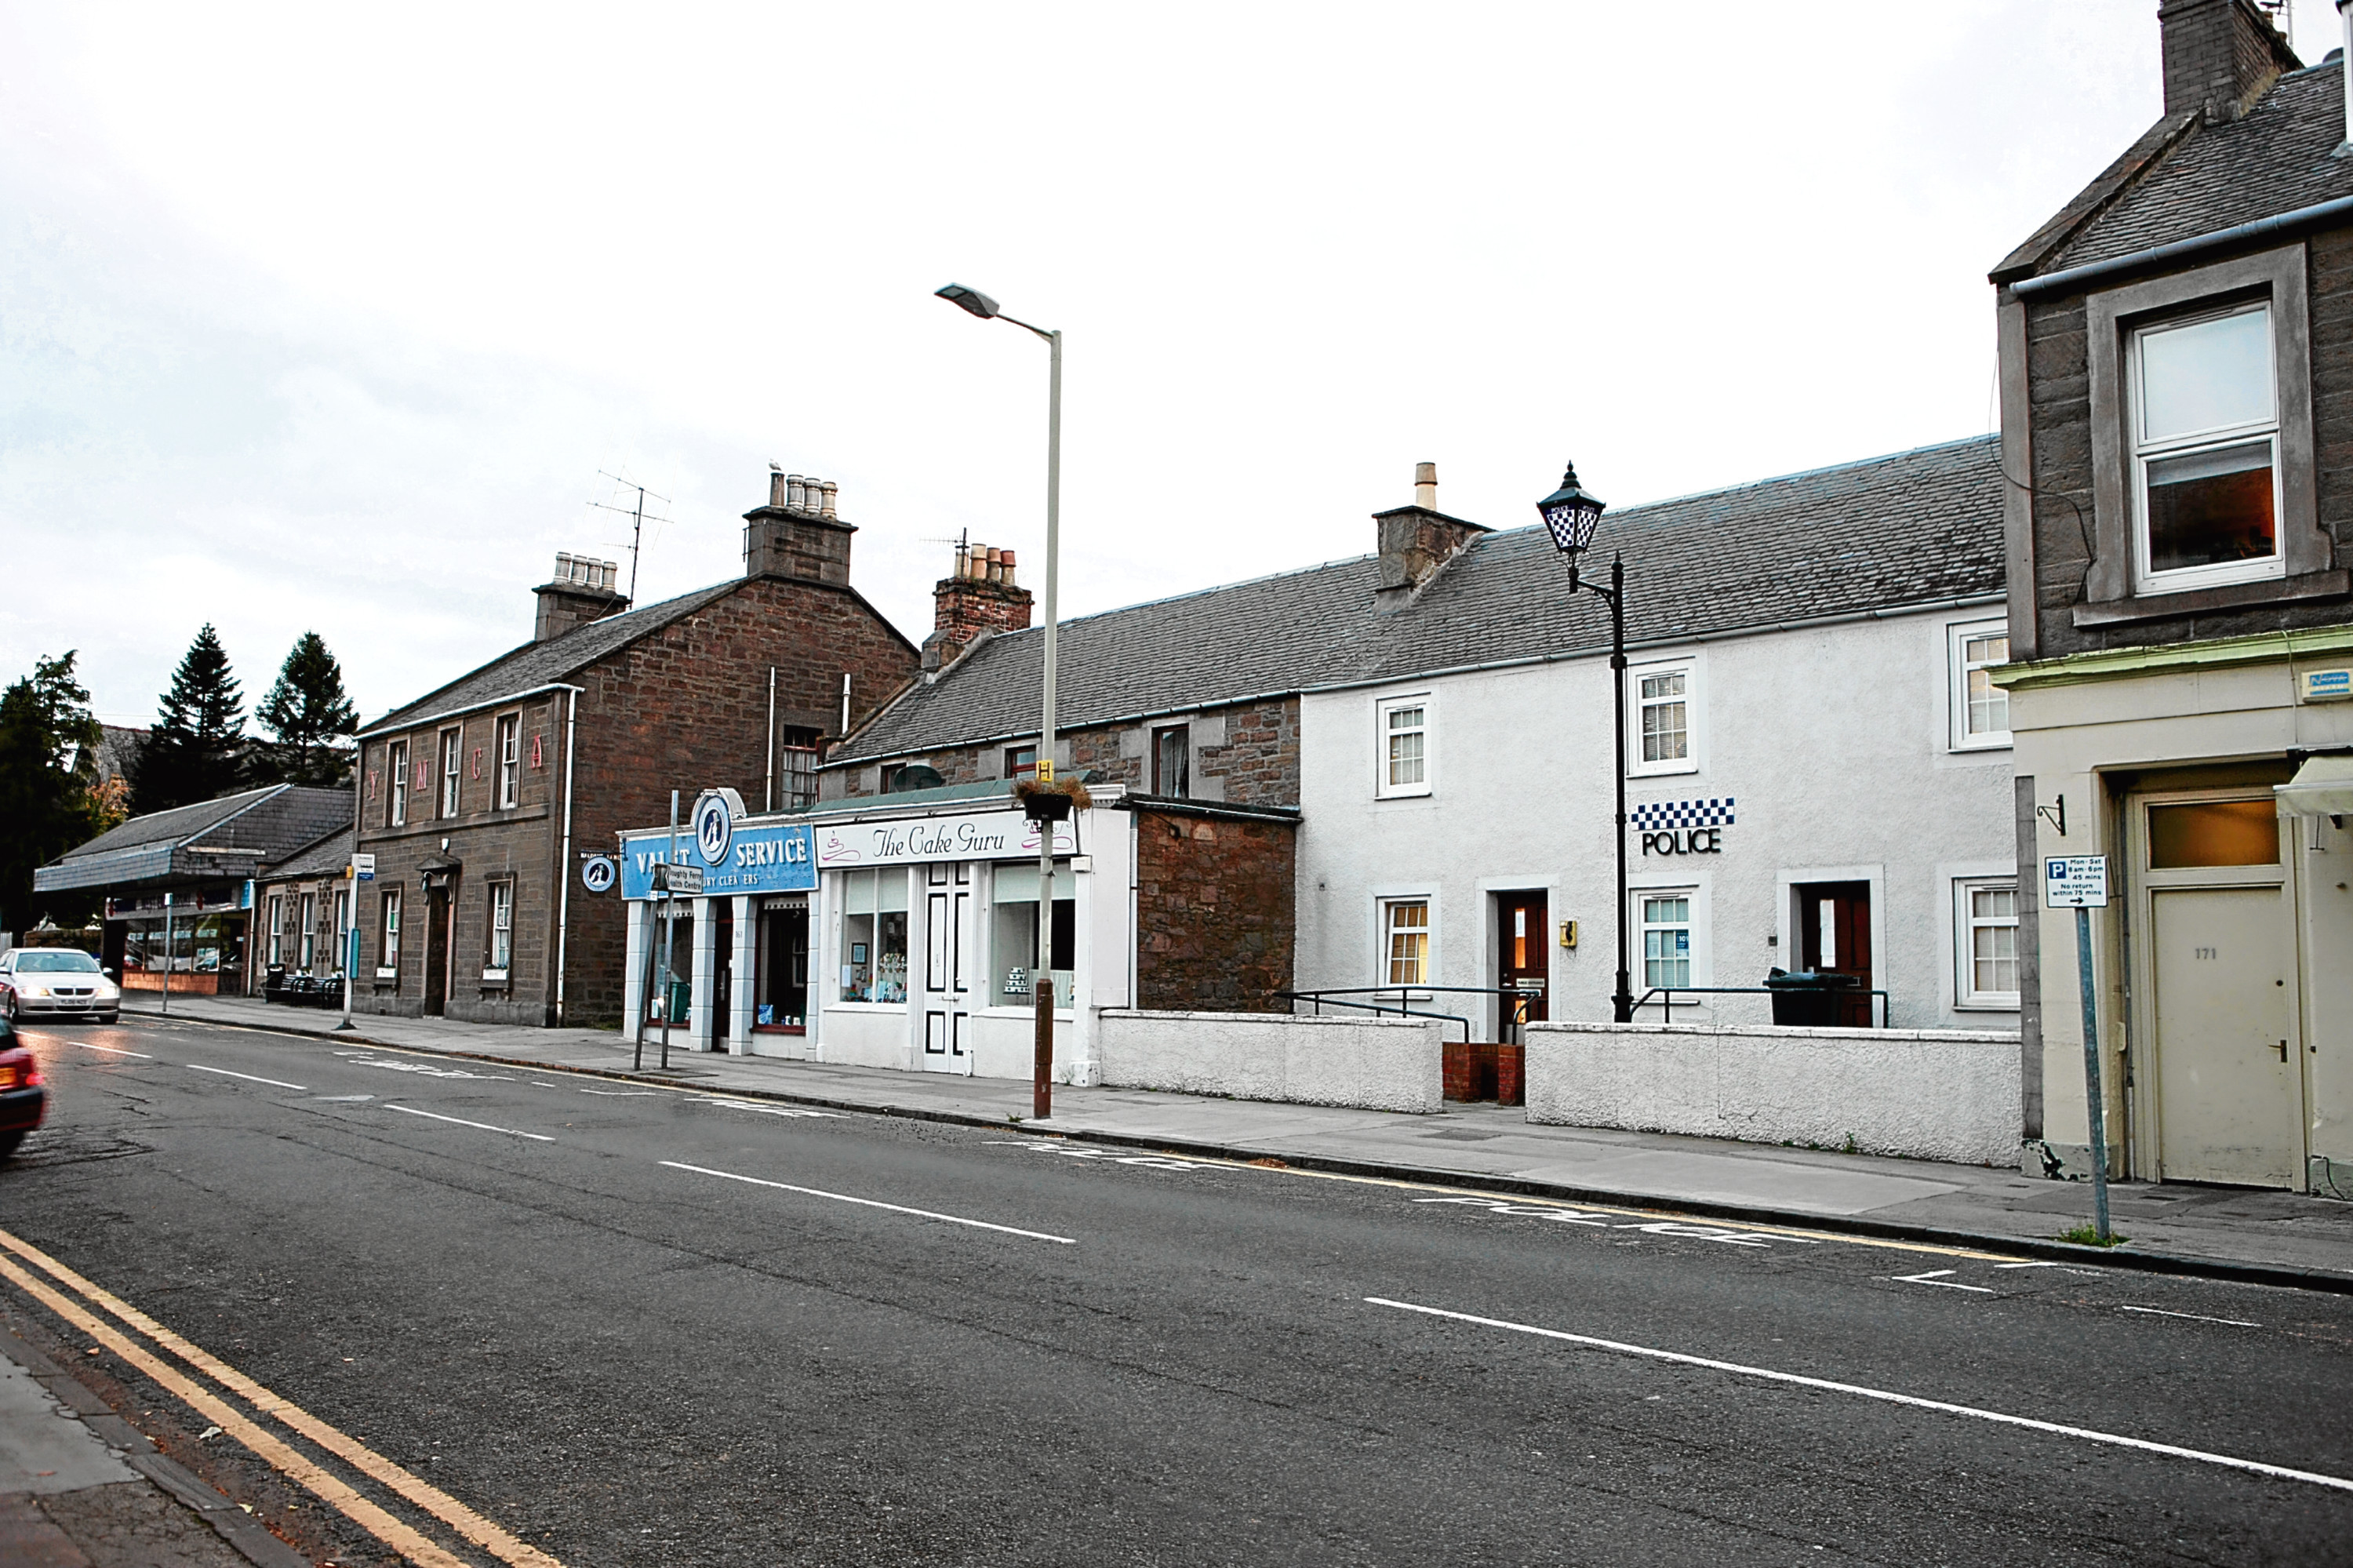 The Broughty Ferry police station could soon be sold off.